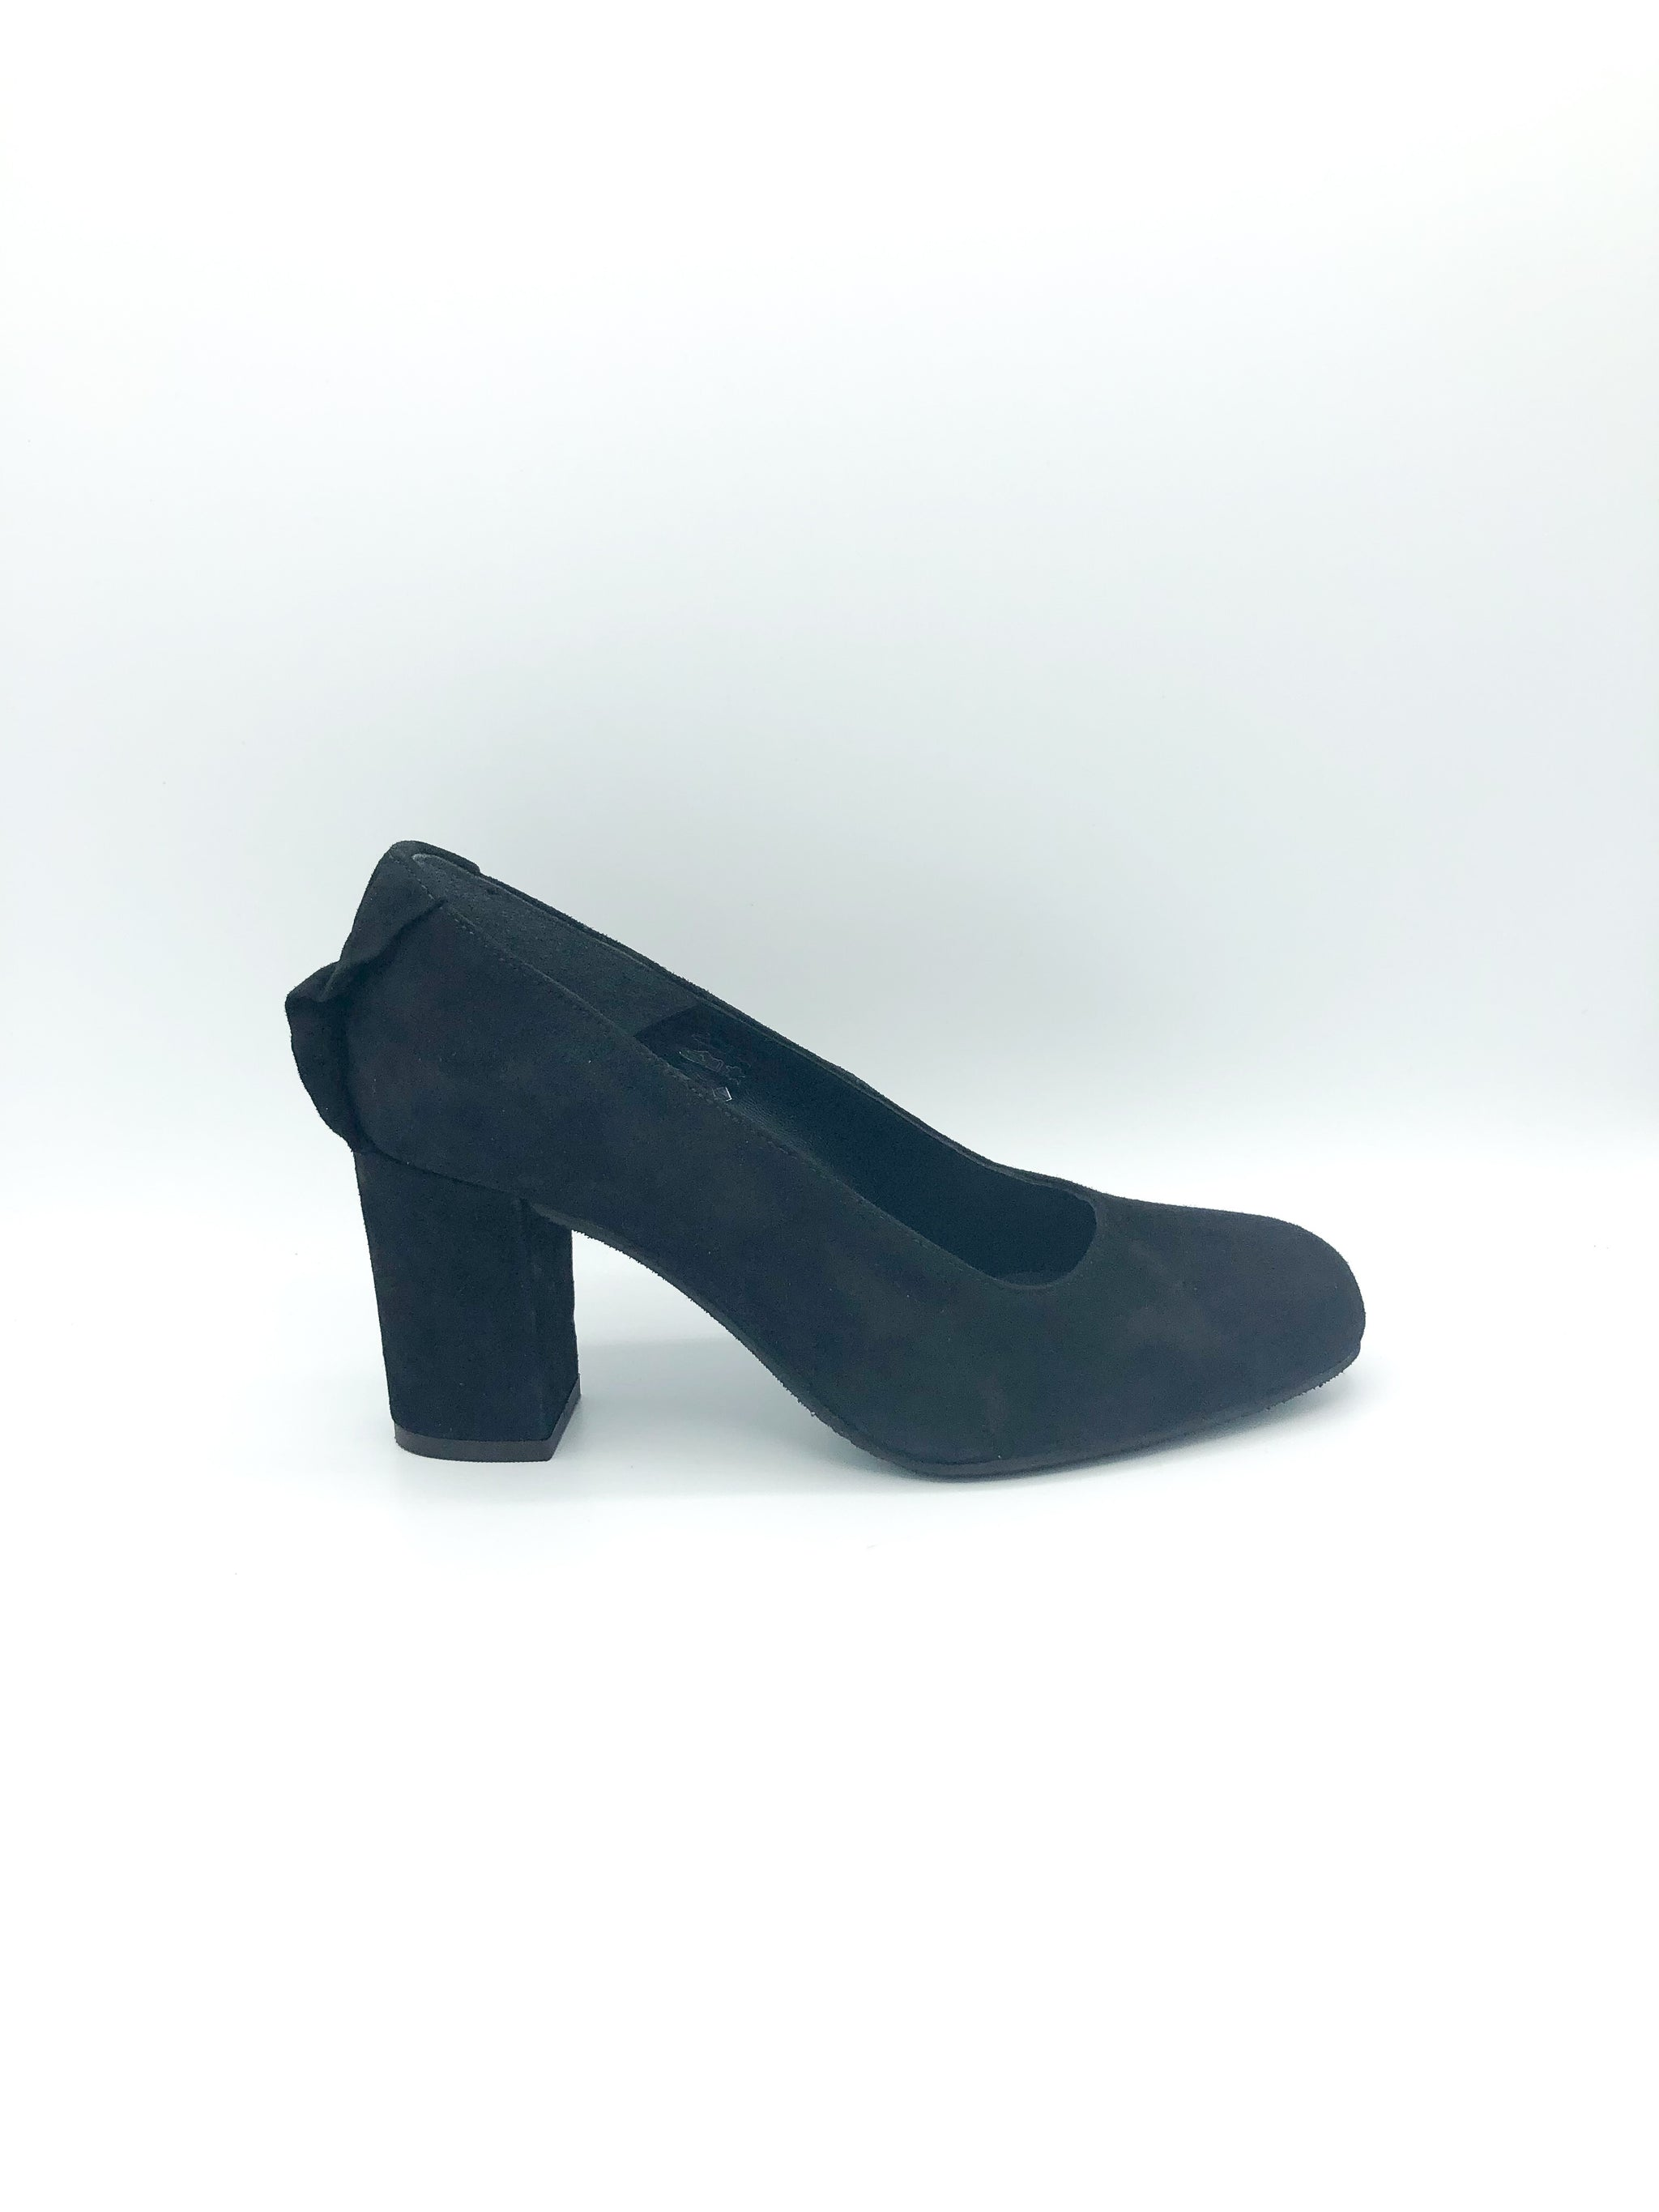 ATELIERS - SHIRA IN BLACK SUEDE